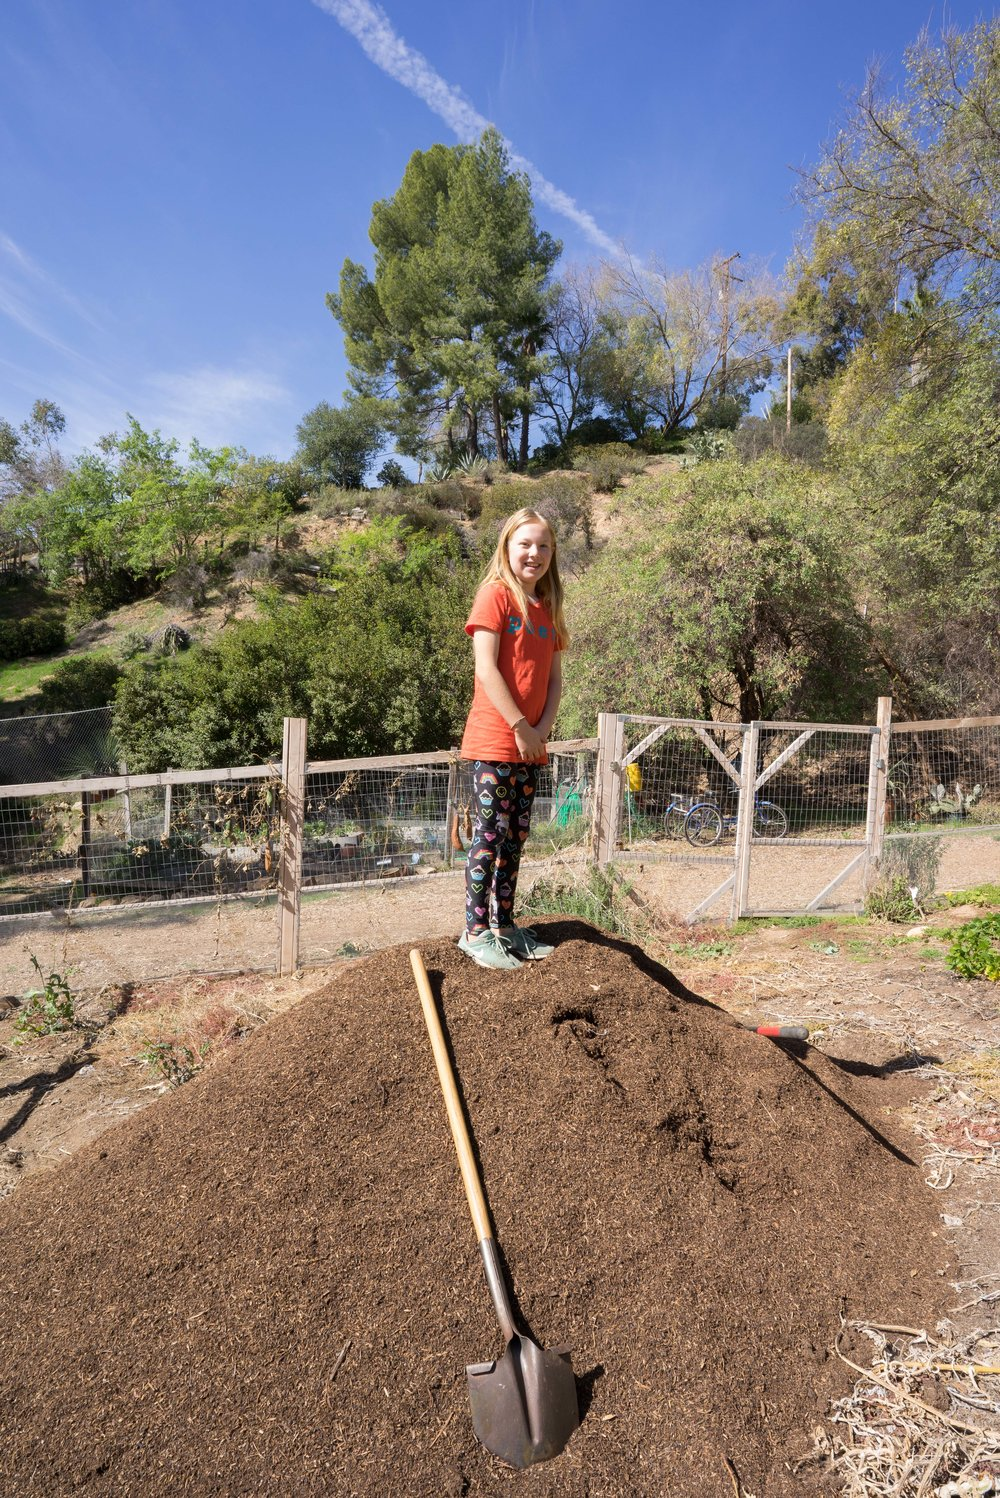 Charlotte McDonald standing on the compost pile. She is planting her own micro-garden of edible flowers and herbs and is a budding entomologist.